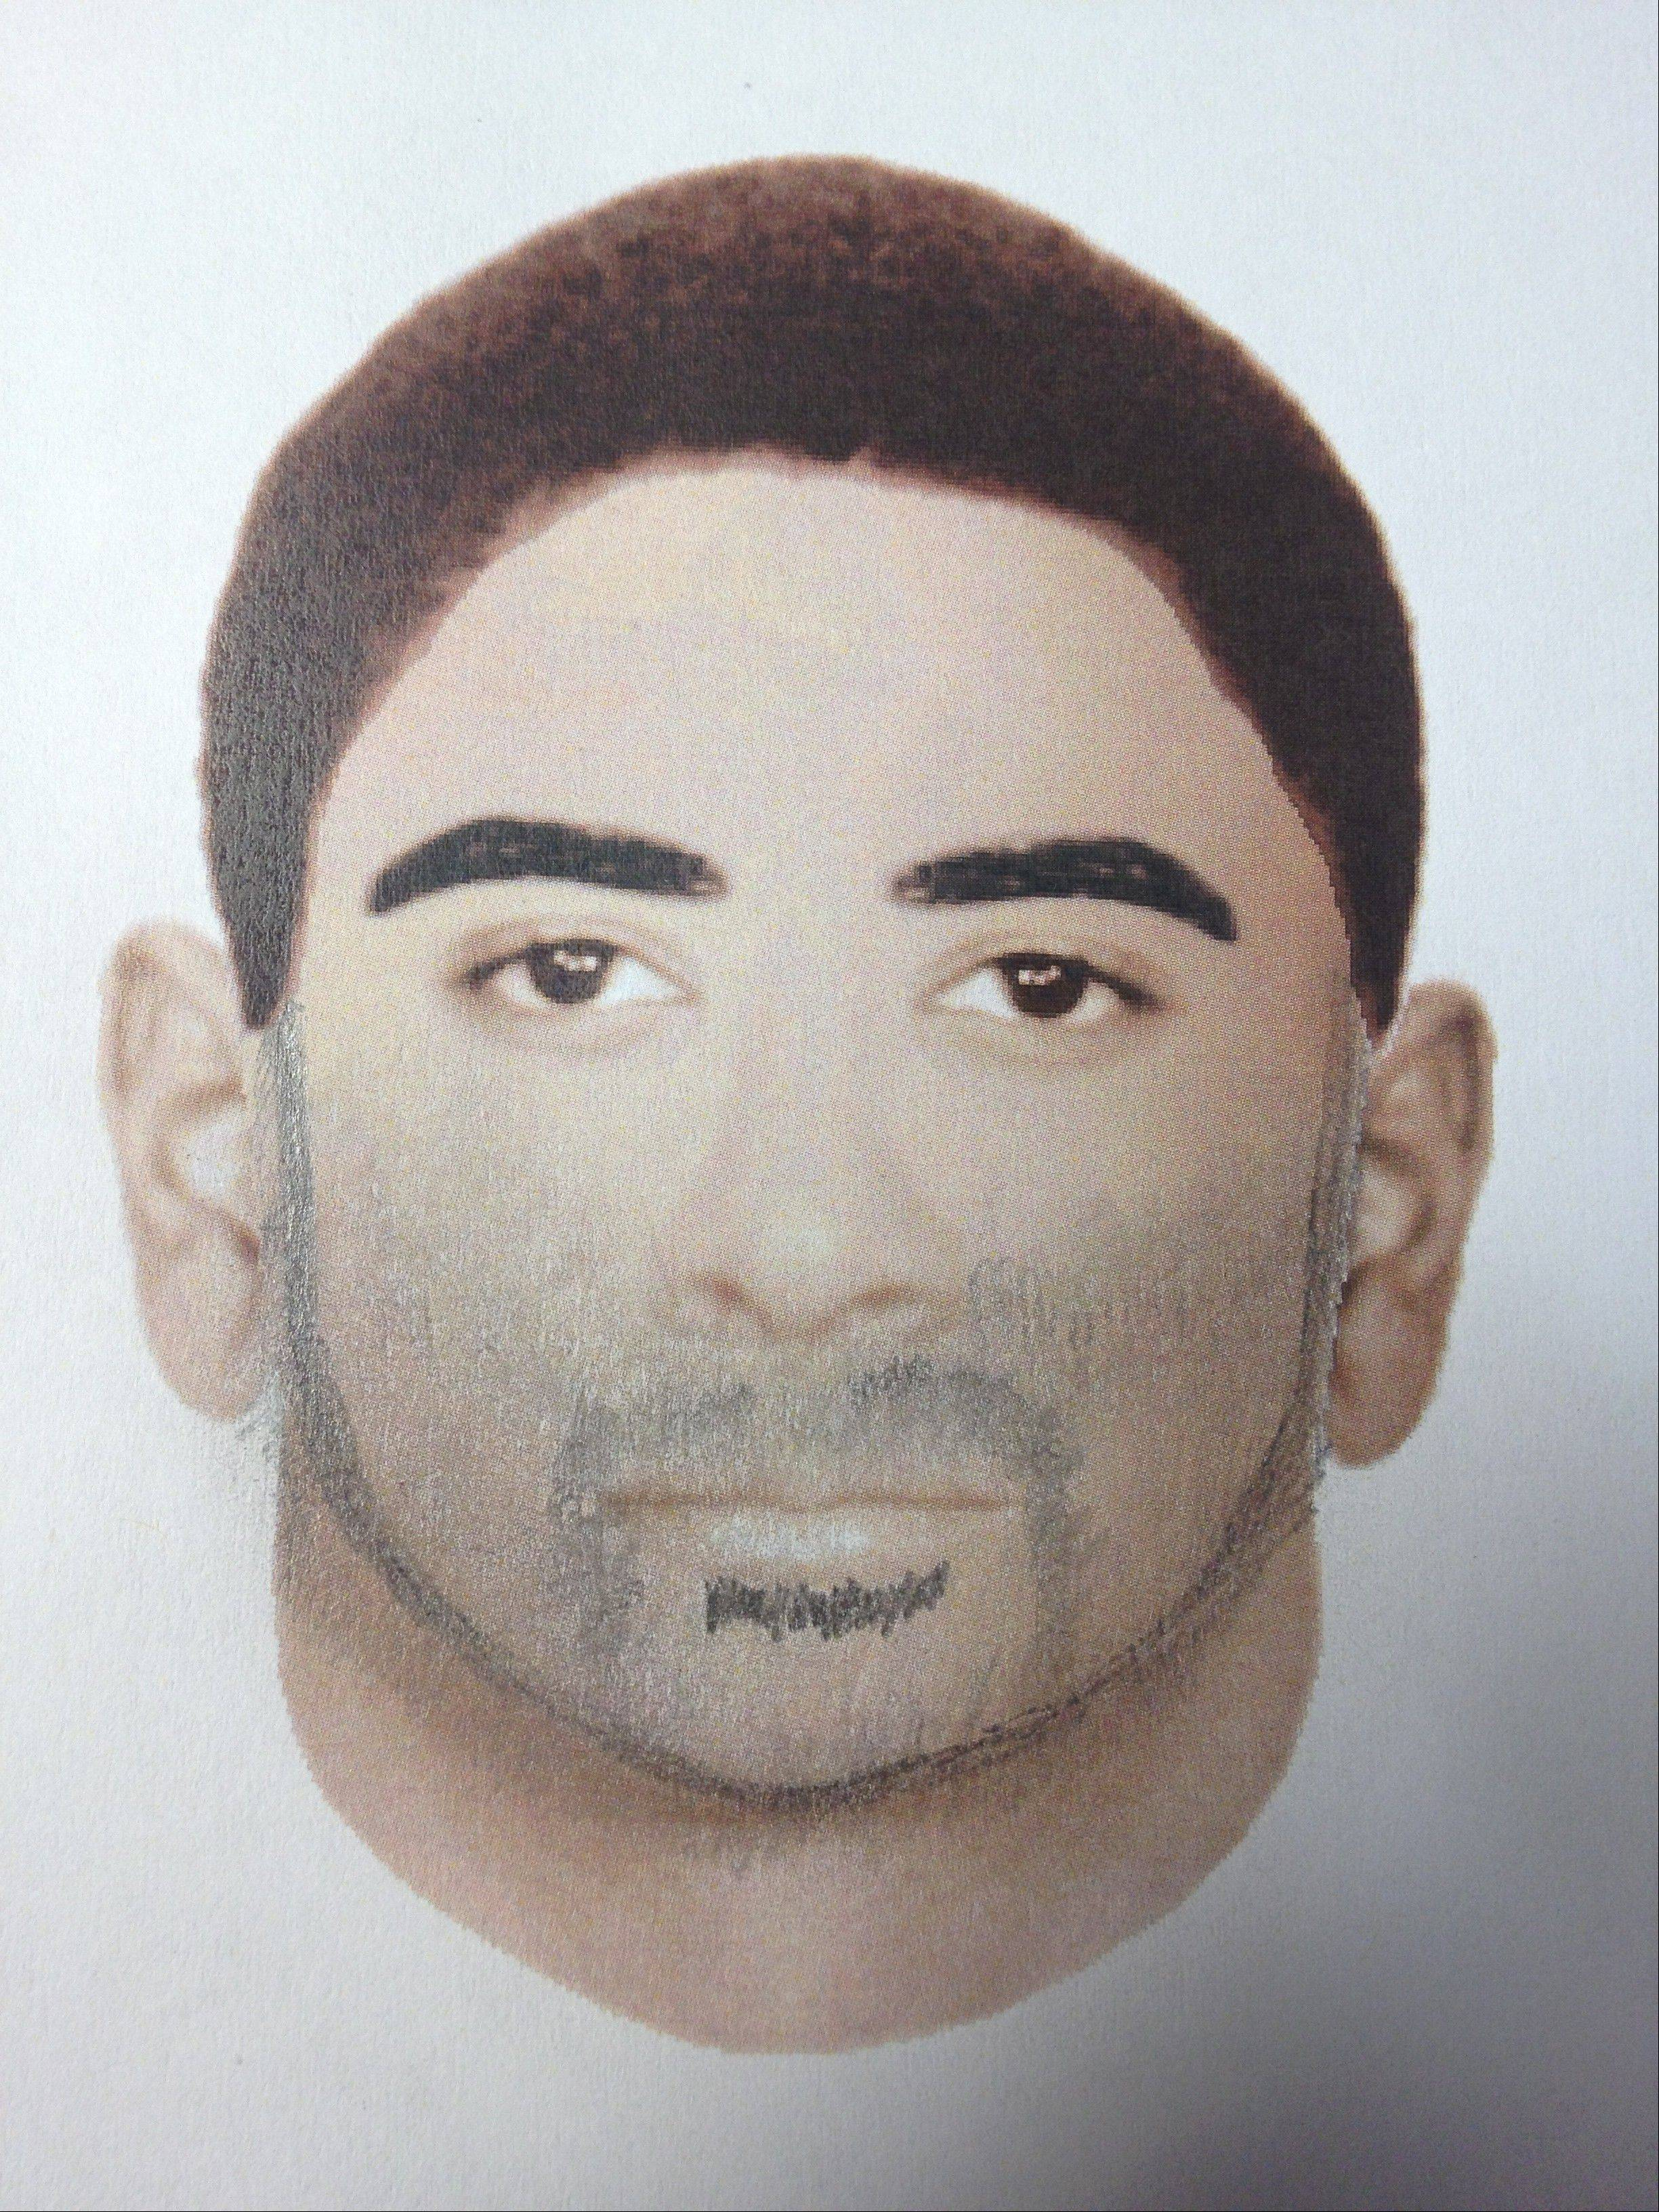 A computer generated likeness of the first attacker's face.